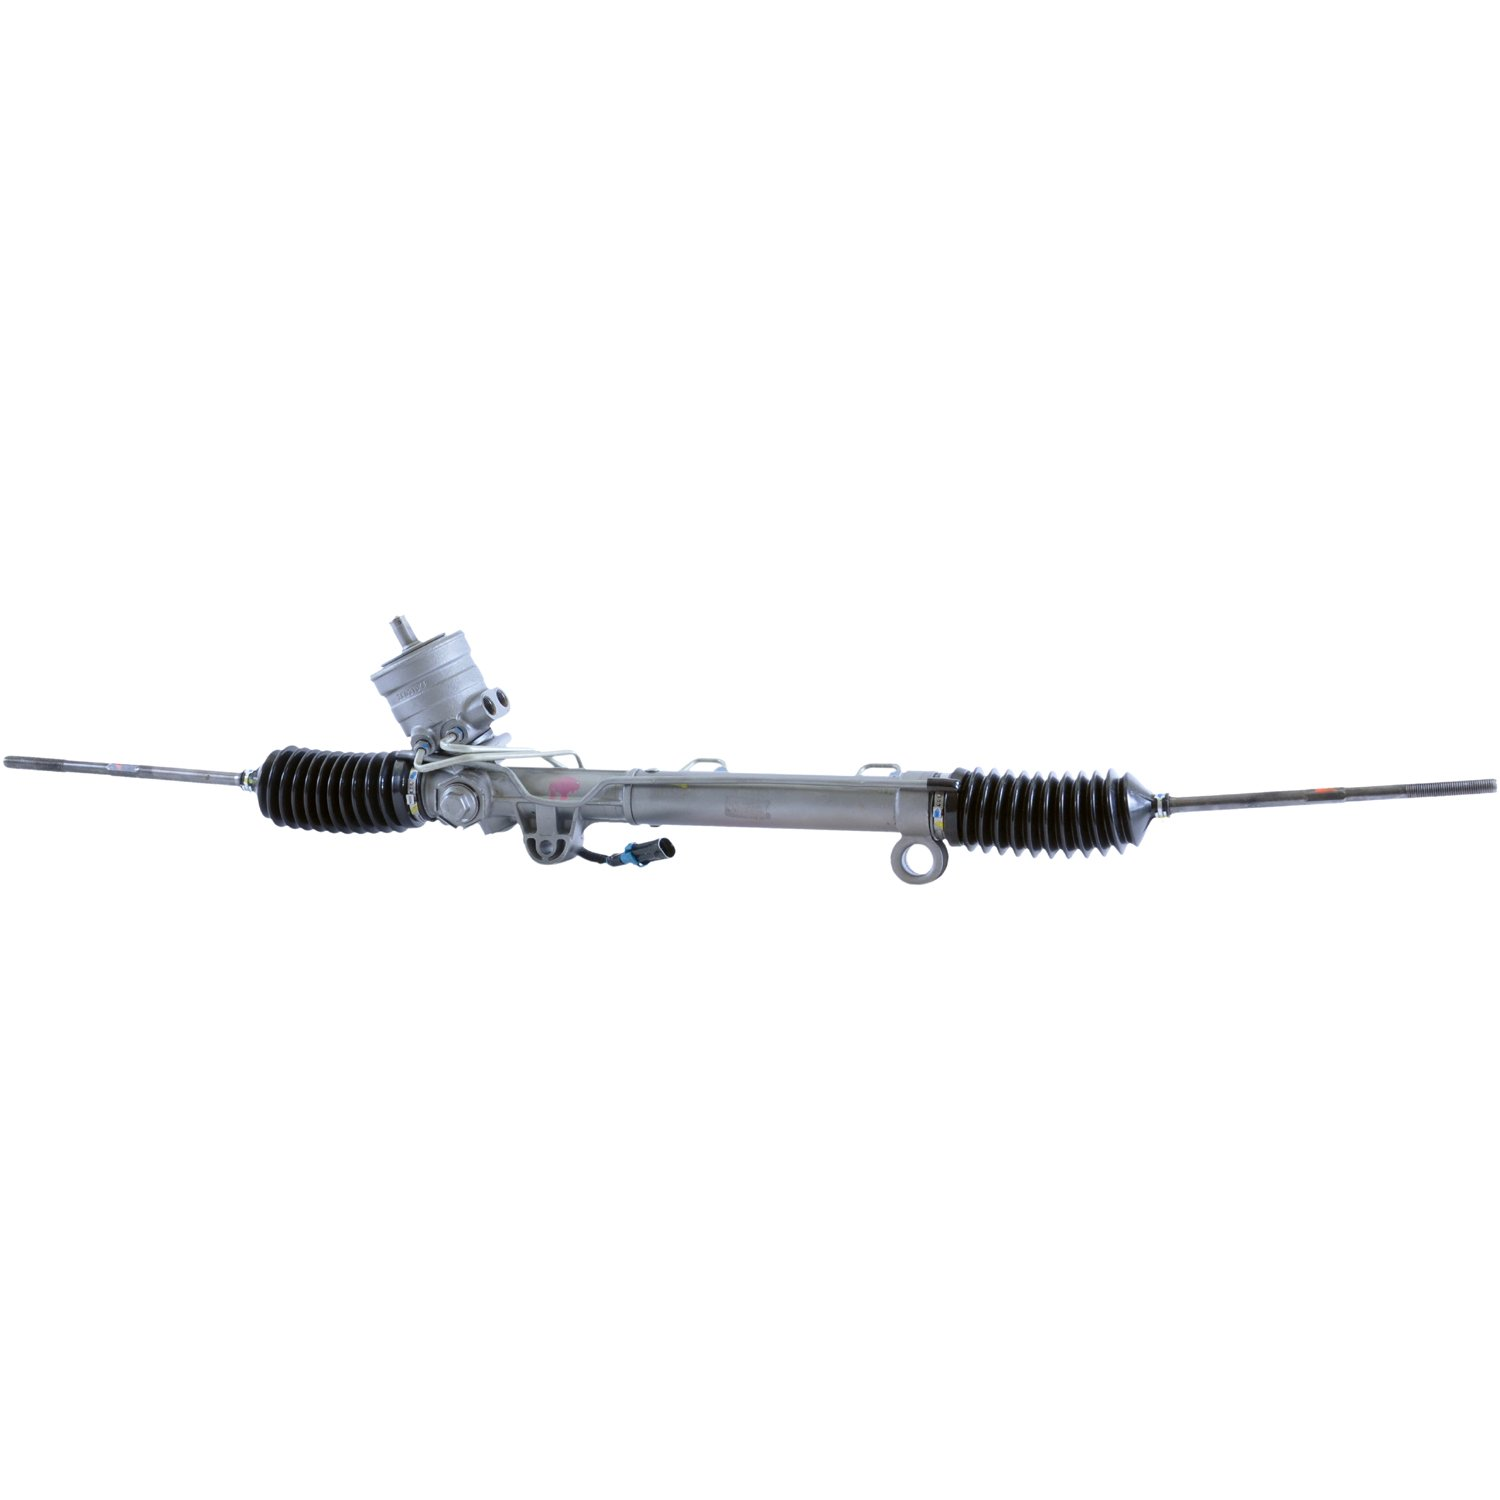 Remanufactured ACDelco 36R0443 Professional Rack and Pinion Power Steering Gear Assembly